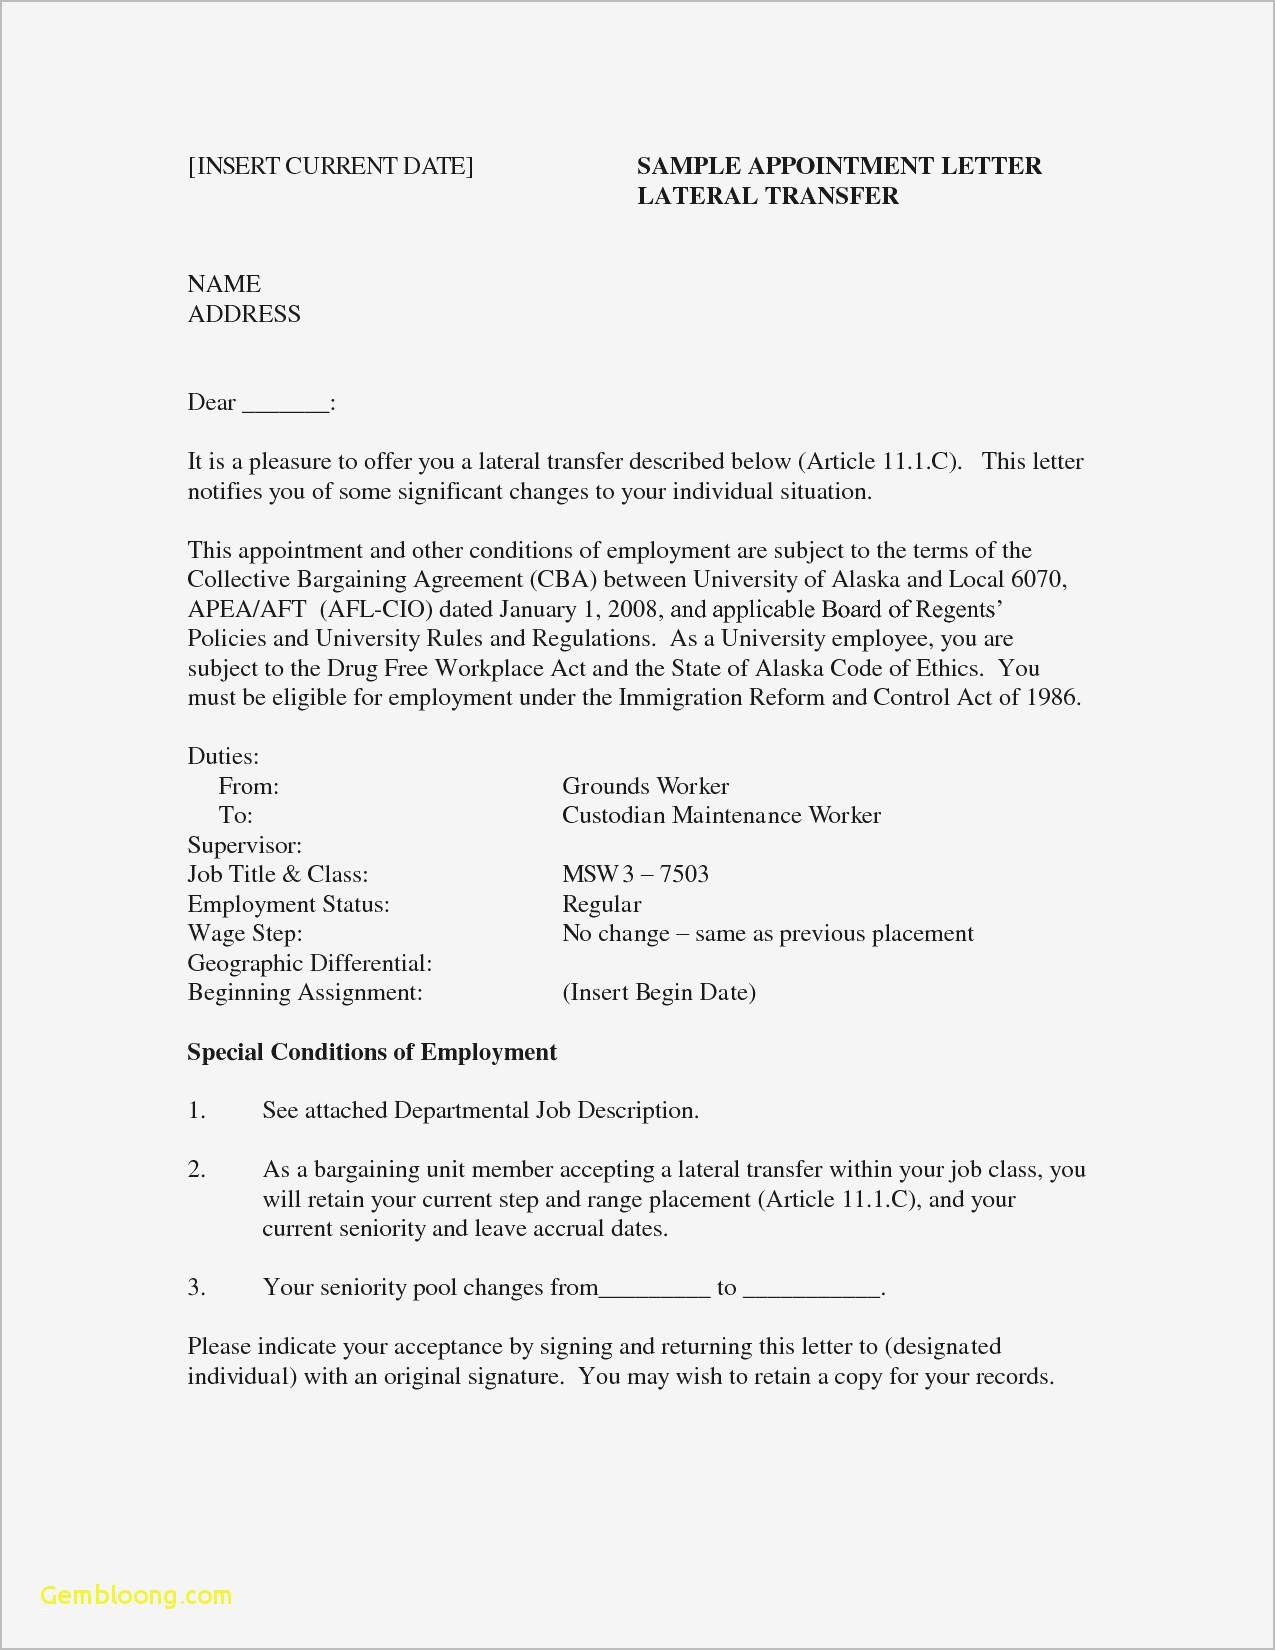 Free Resume Templates Download - Sample Chronological Resume format Free Downloads Best Actor